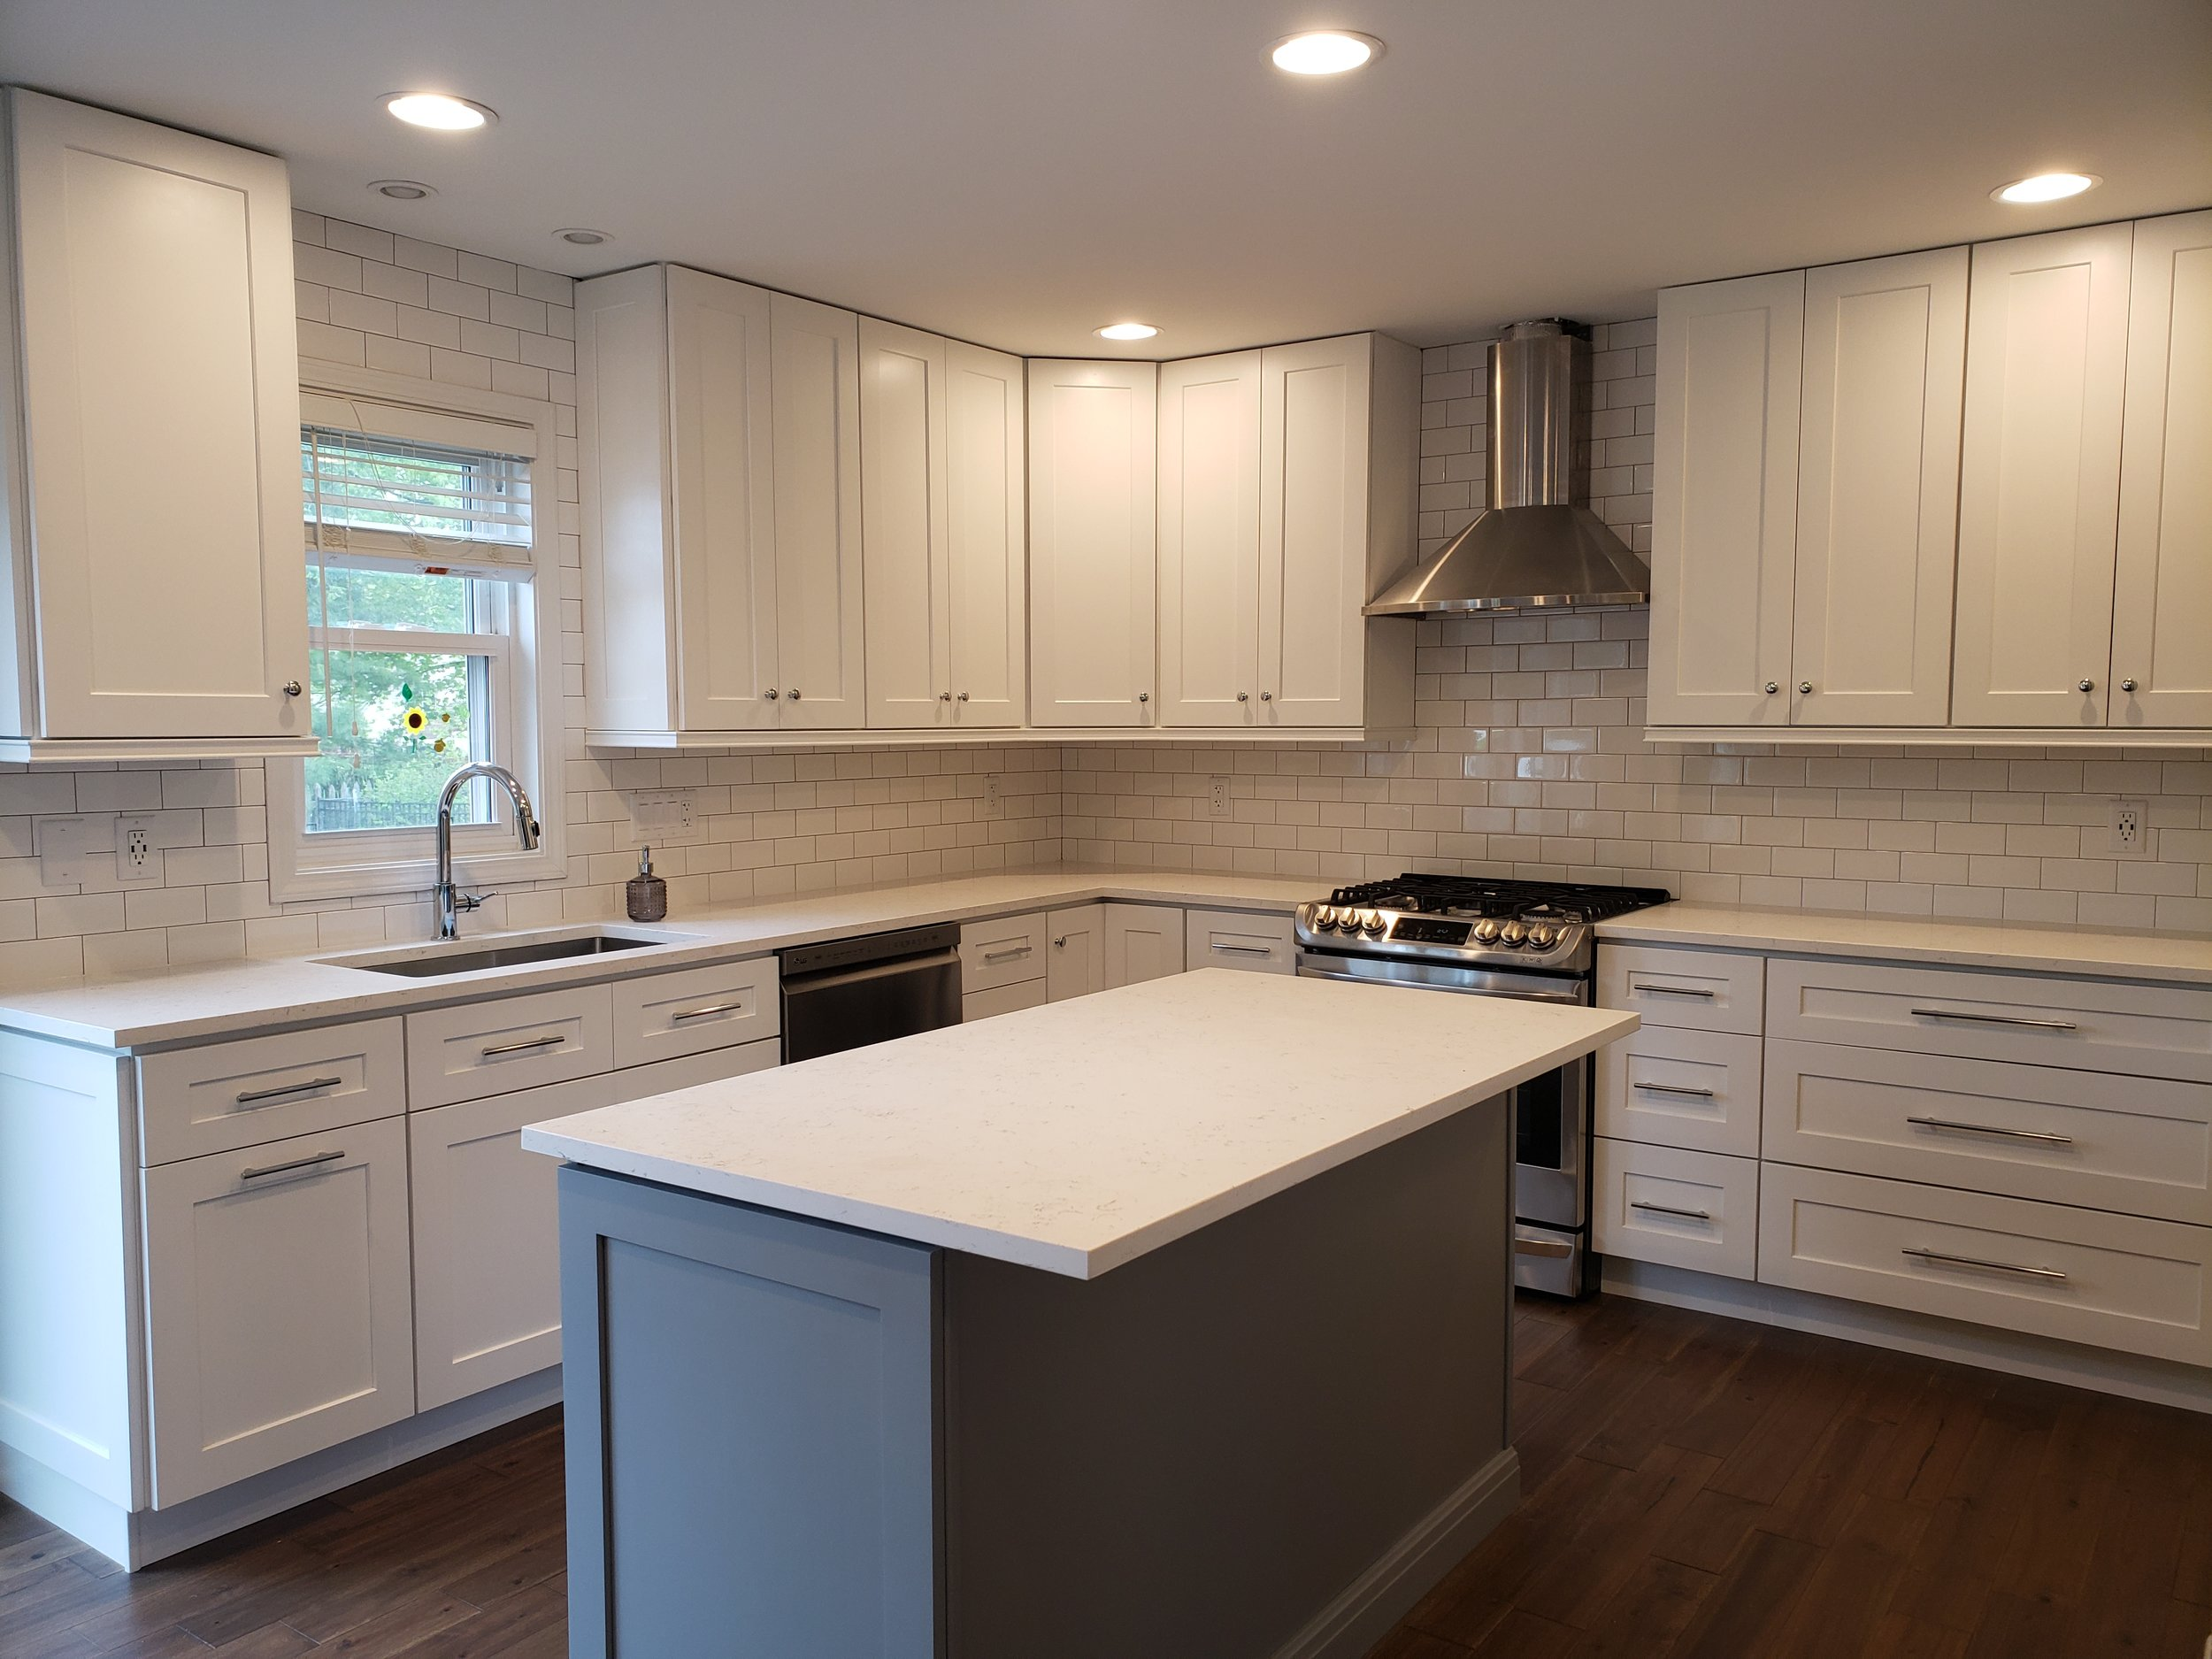 Naperville Kitchen Remodeling - Kure Construction Inc.